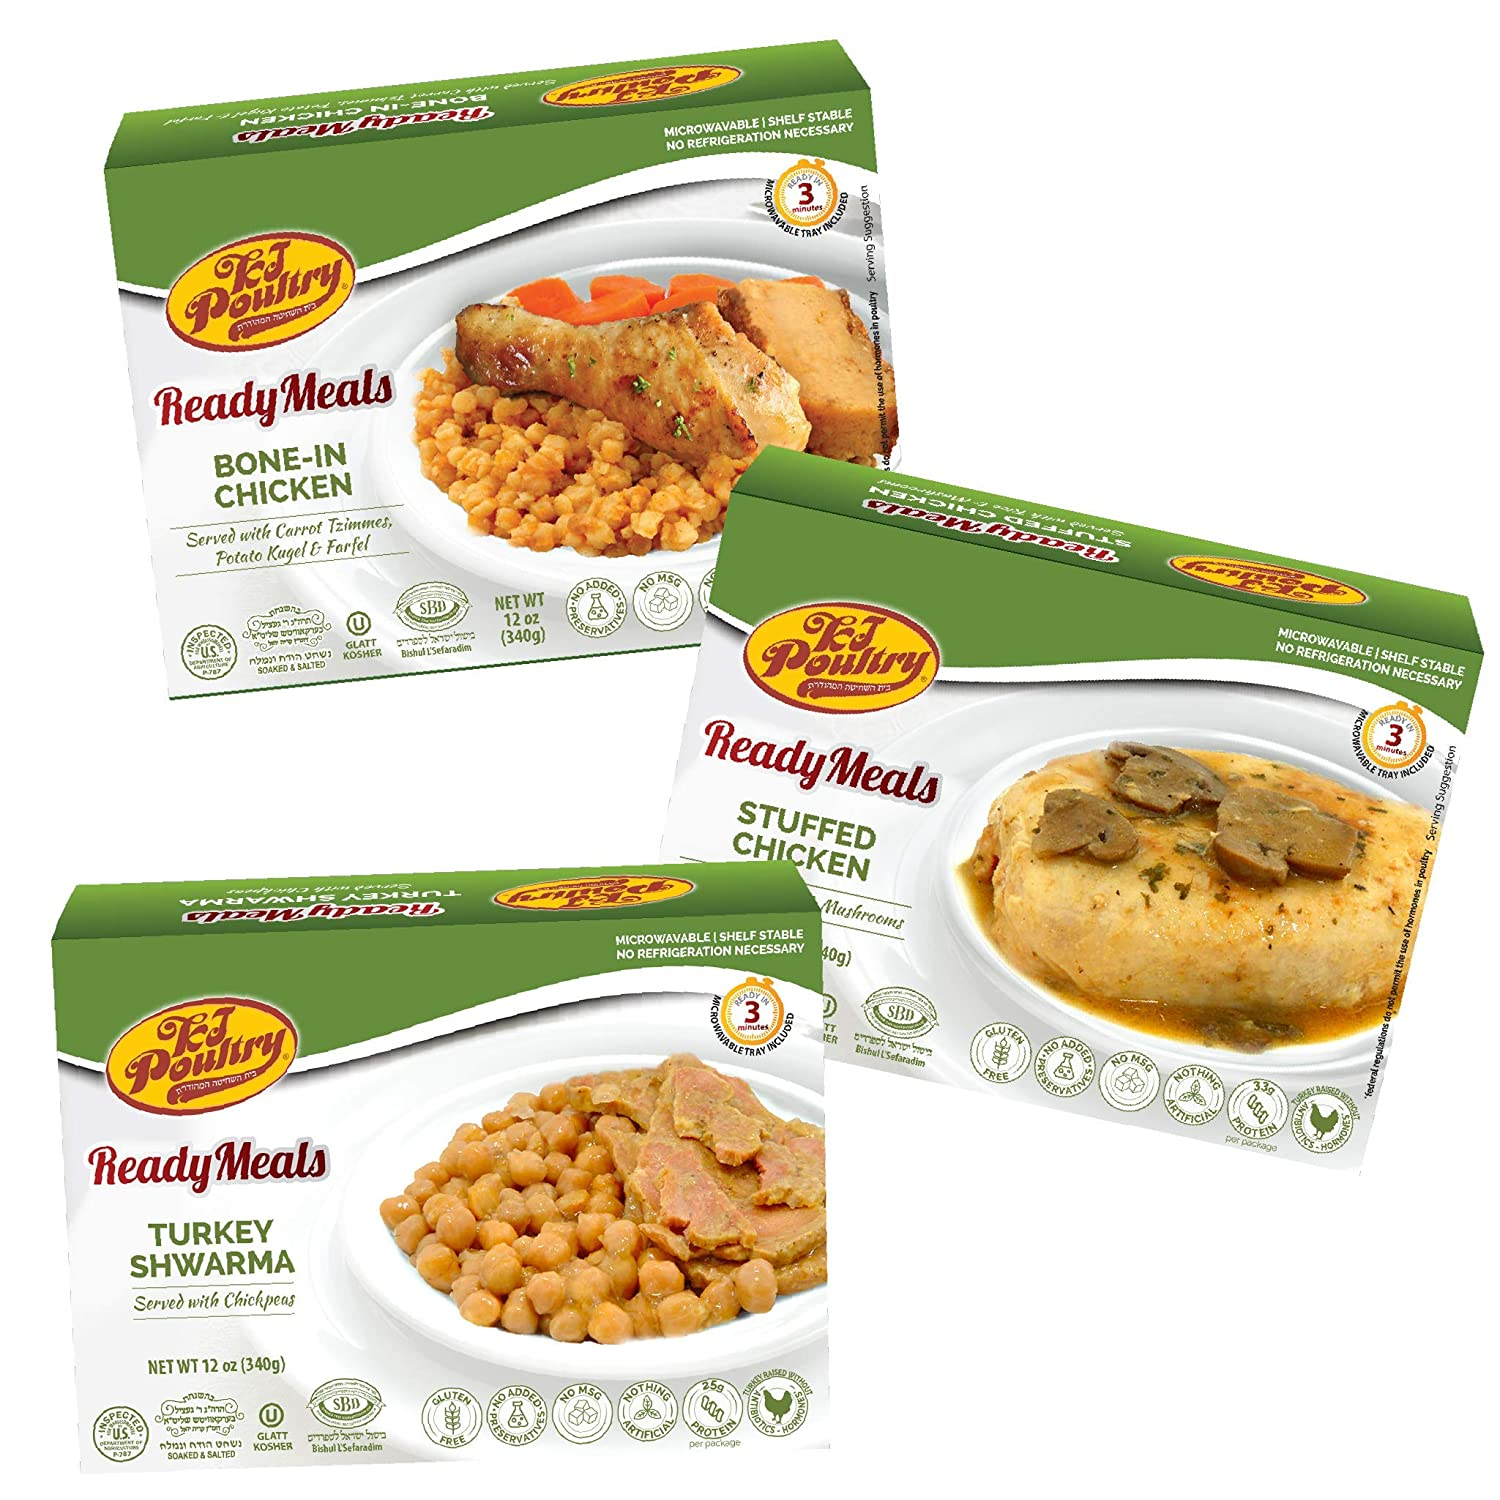 Kosher Mre Meat Meals Ready to Eat, Variety of Stuffed Chicken Breast, Turkey Shwarma, Bone In Chicken (3 Pack Bundle) - Prepared Entree Fully Cooked, Shelf Stable Microwave Dinner